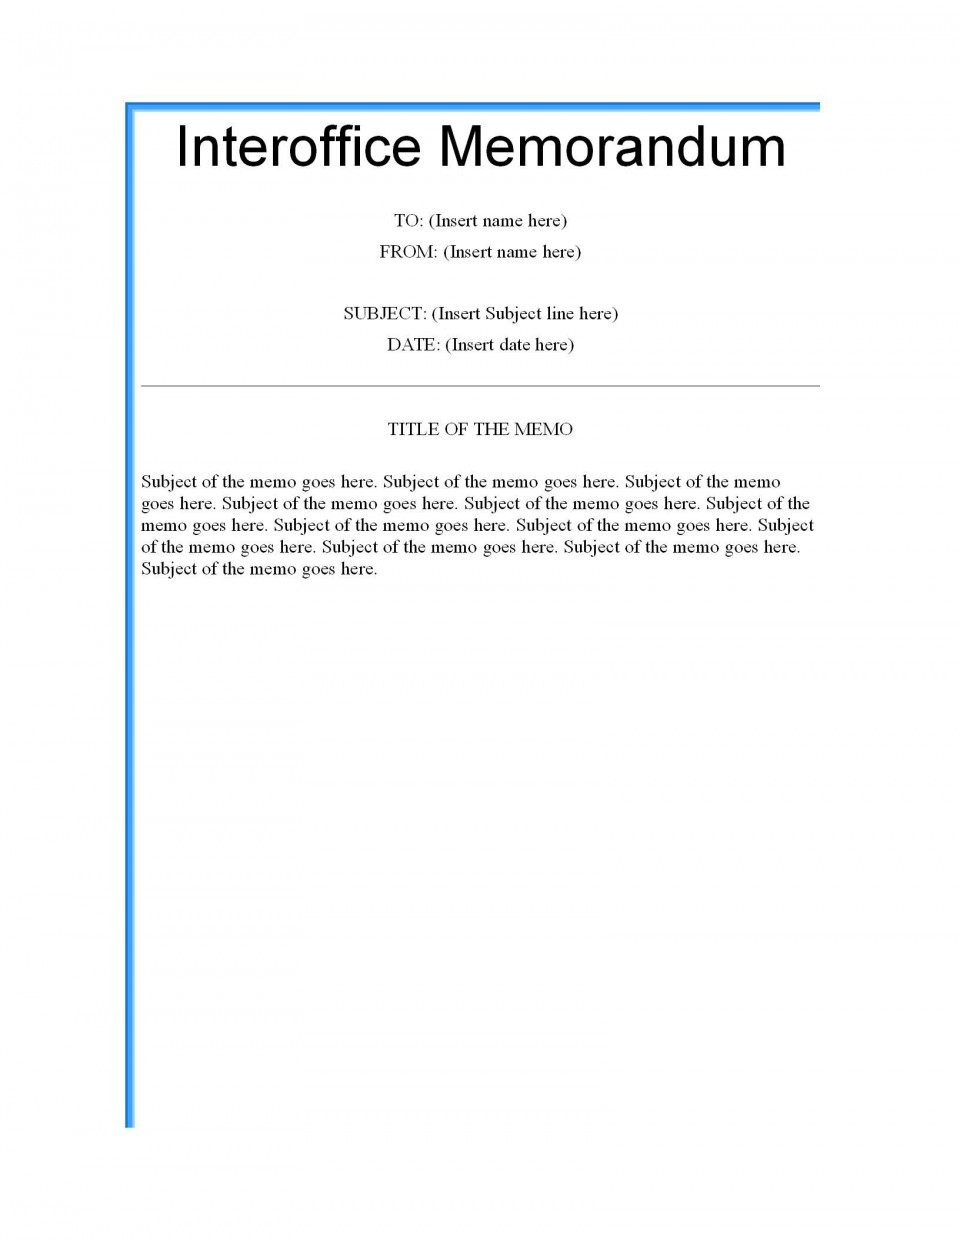 003 Formidable Microsoft Word Memo Template Highest Clarity  Professional 2010 Free Legal960